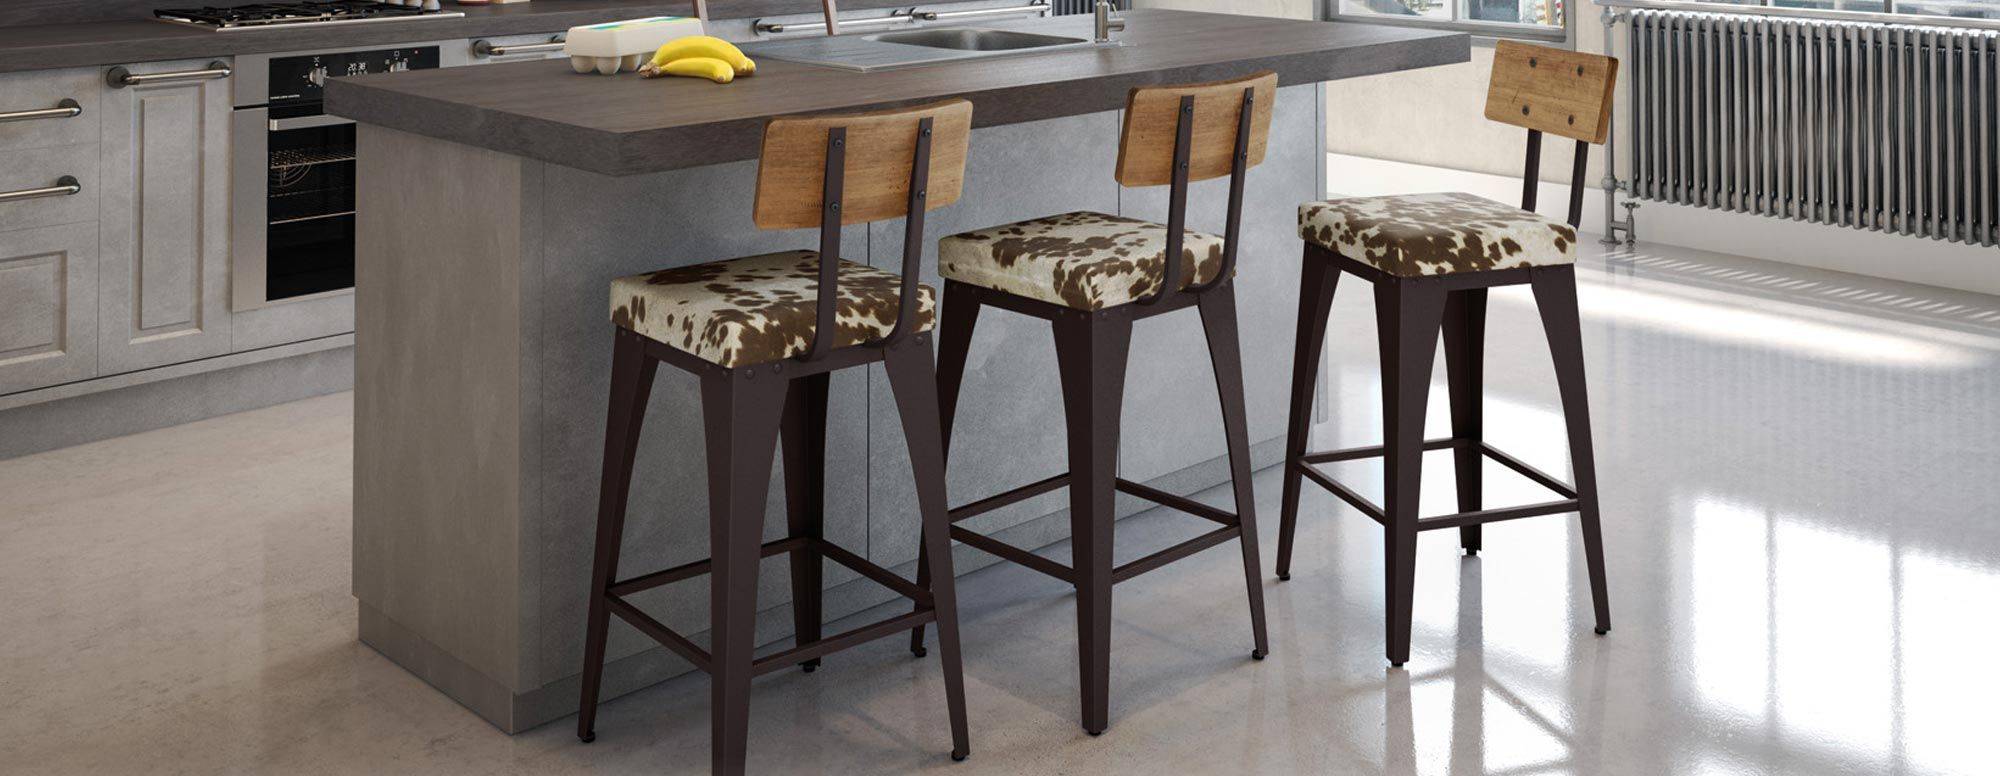 Restaurant Contract Furniture Ontario   Bar Stools   The Table ...